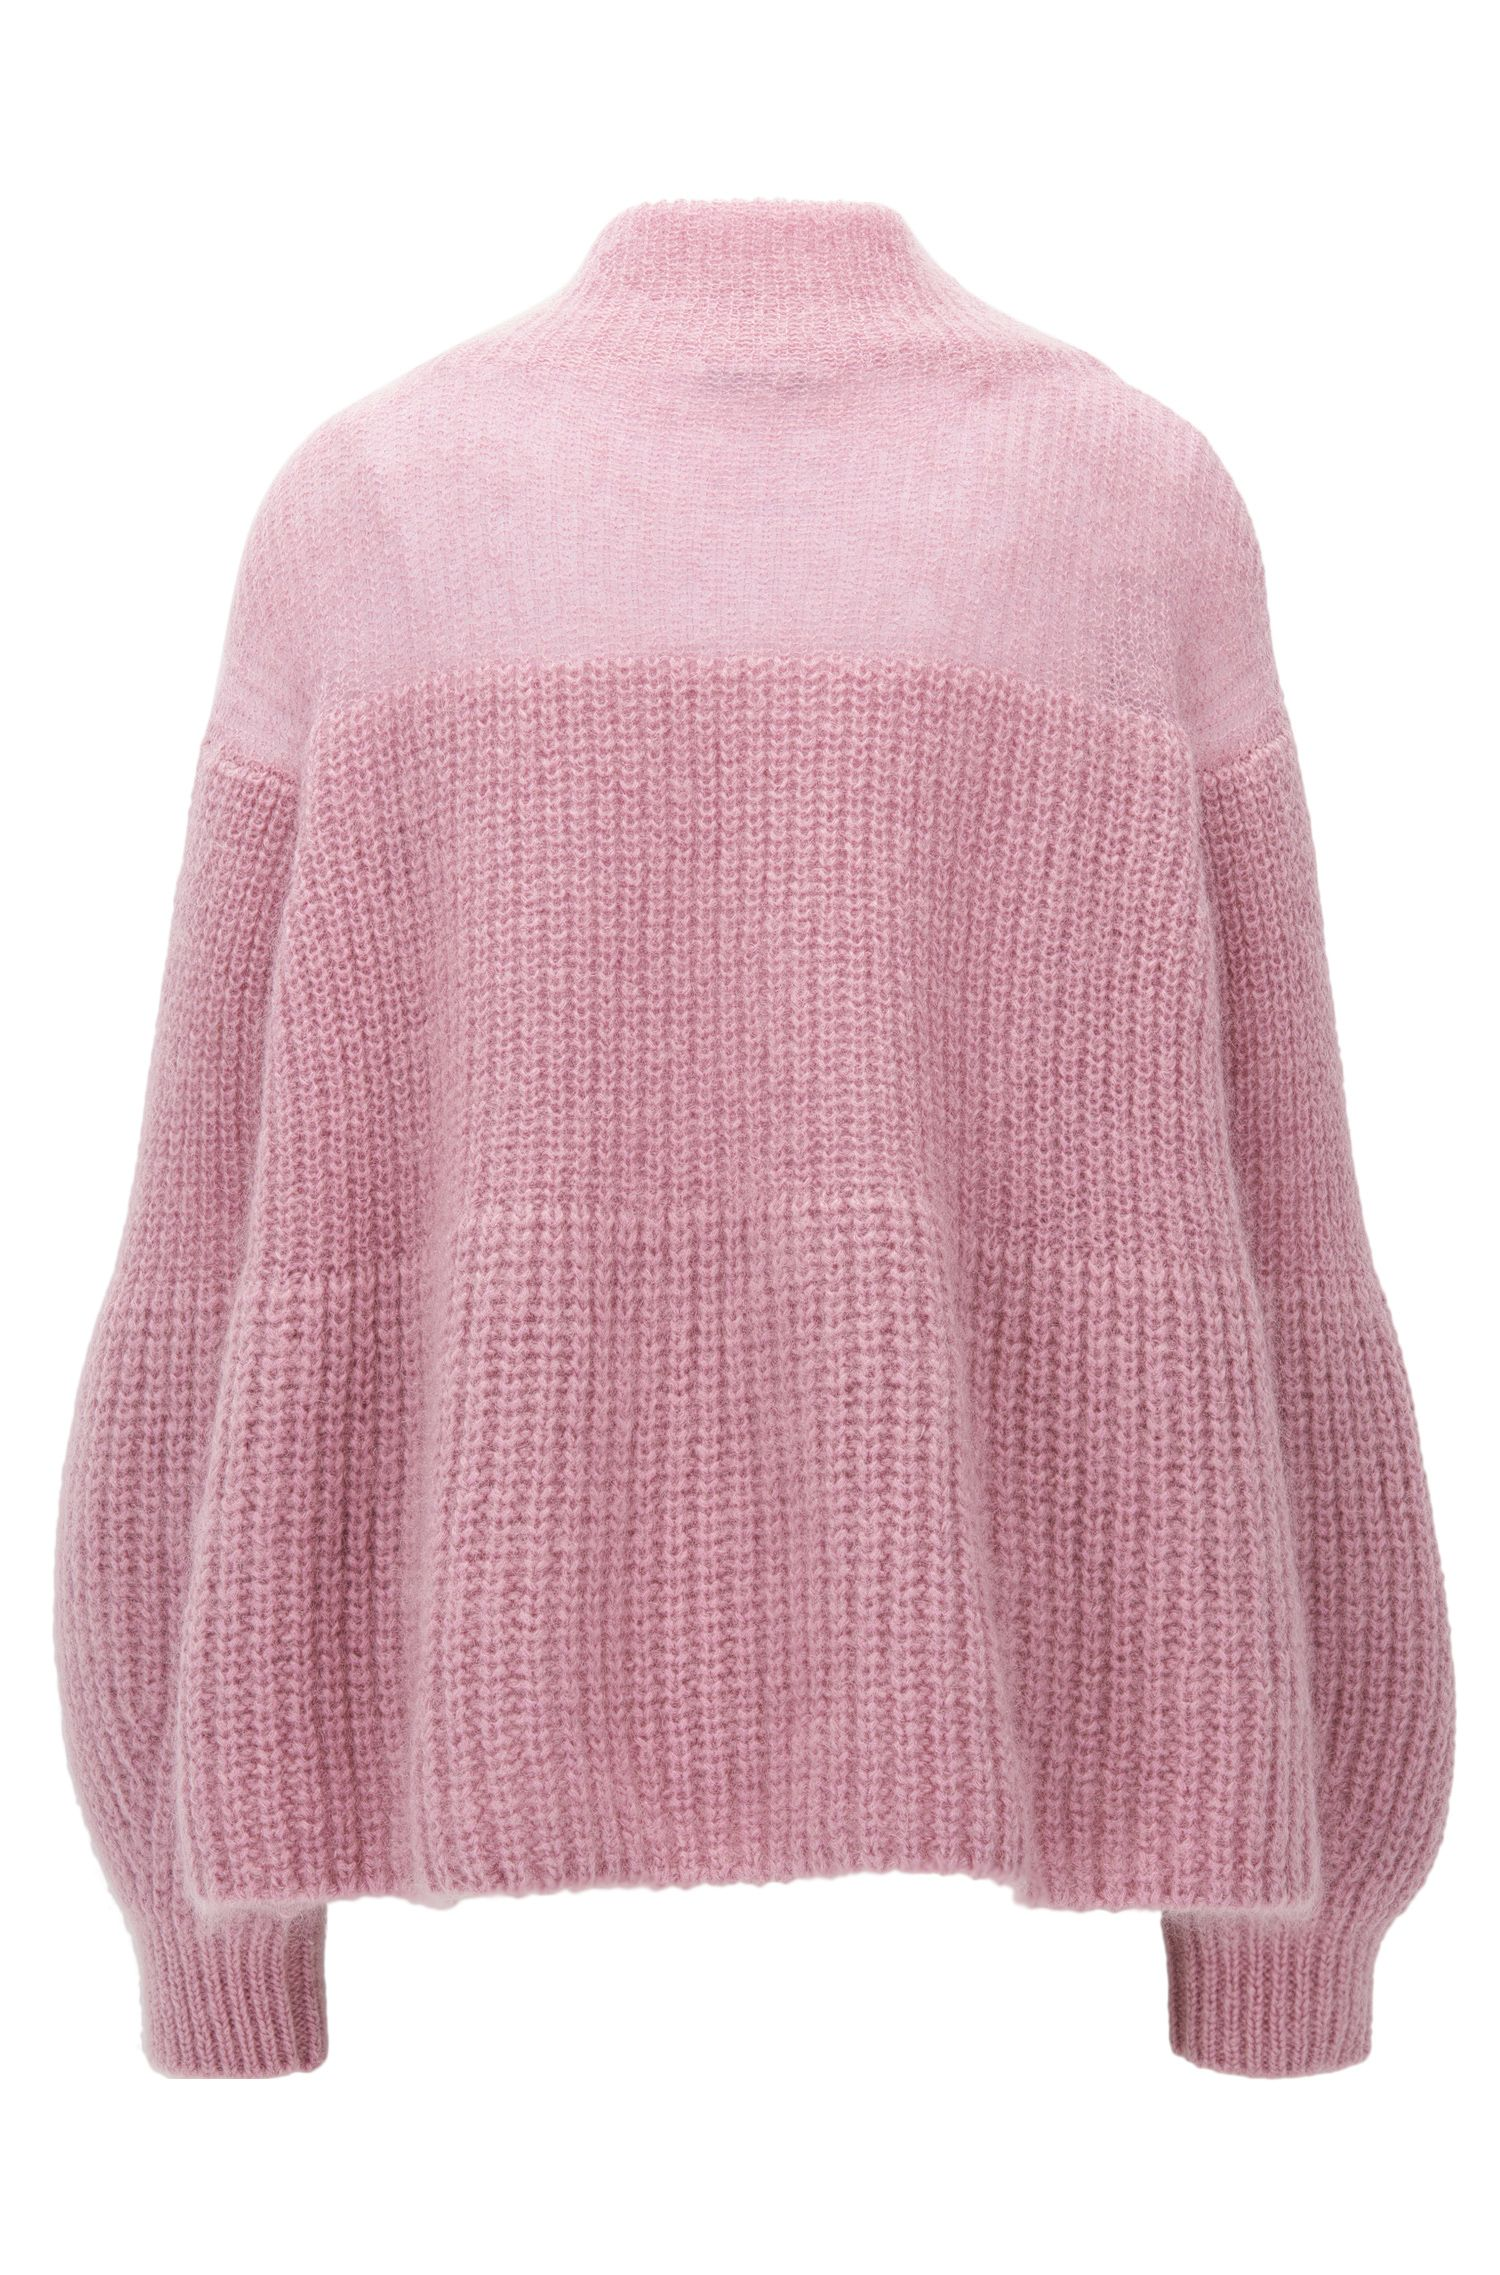 Mohair Blend Chunky Knit Sweater | Frieza